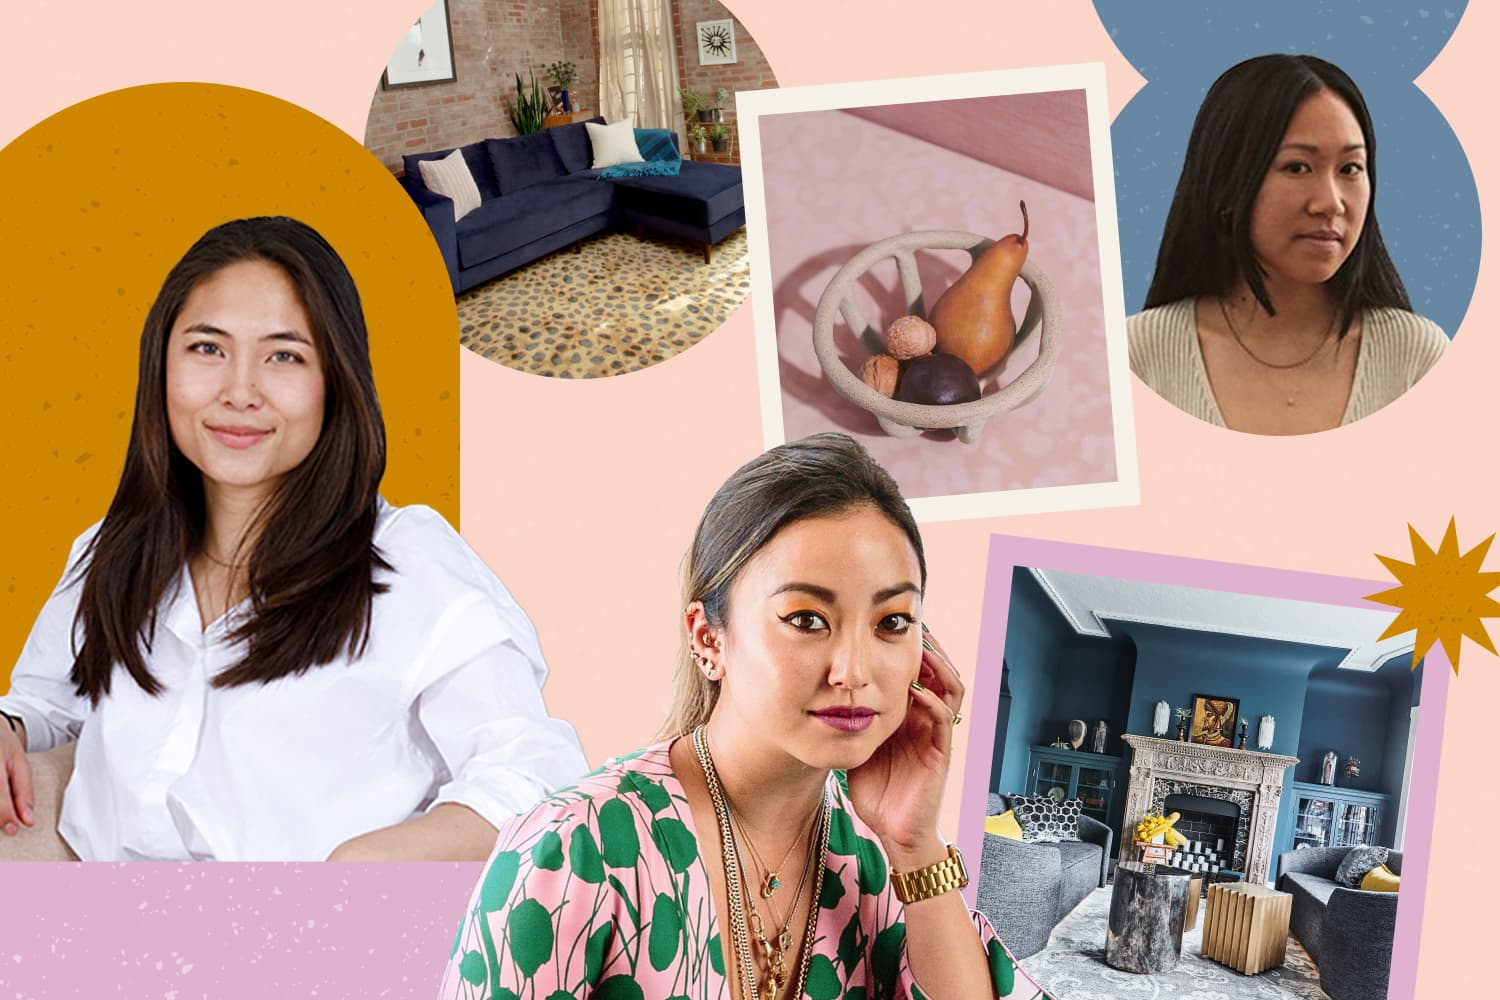 Here's How Three Asian Designers Are Becoming the Change They Want to See in the Design Industry